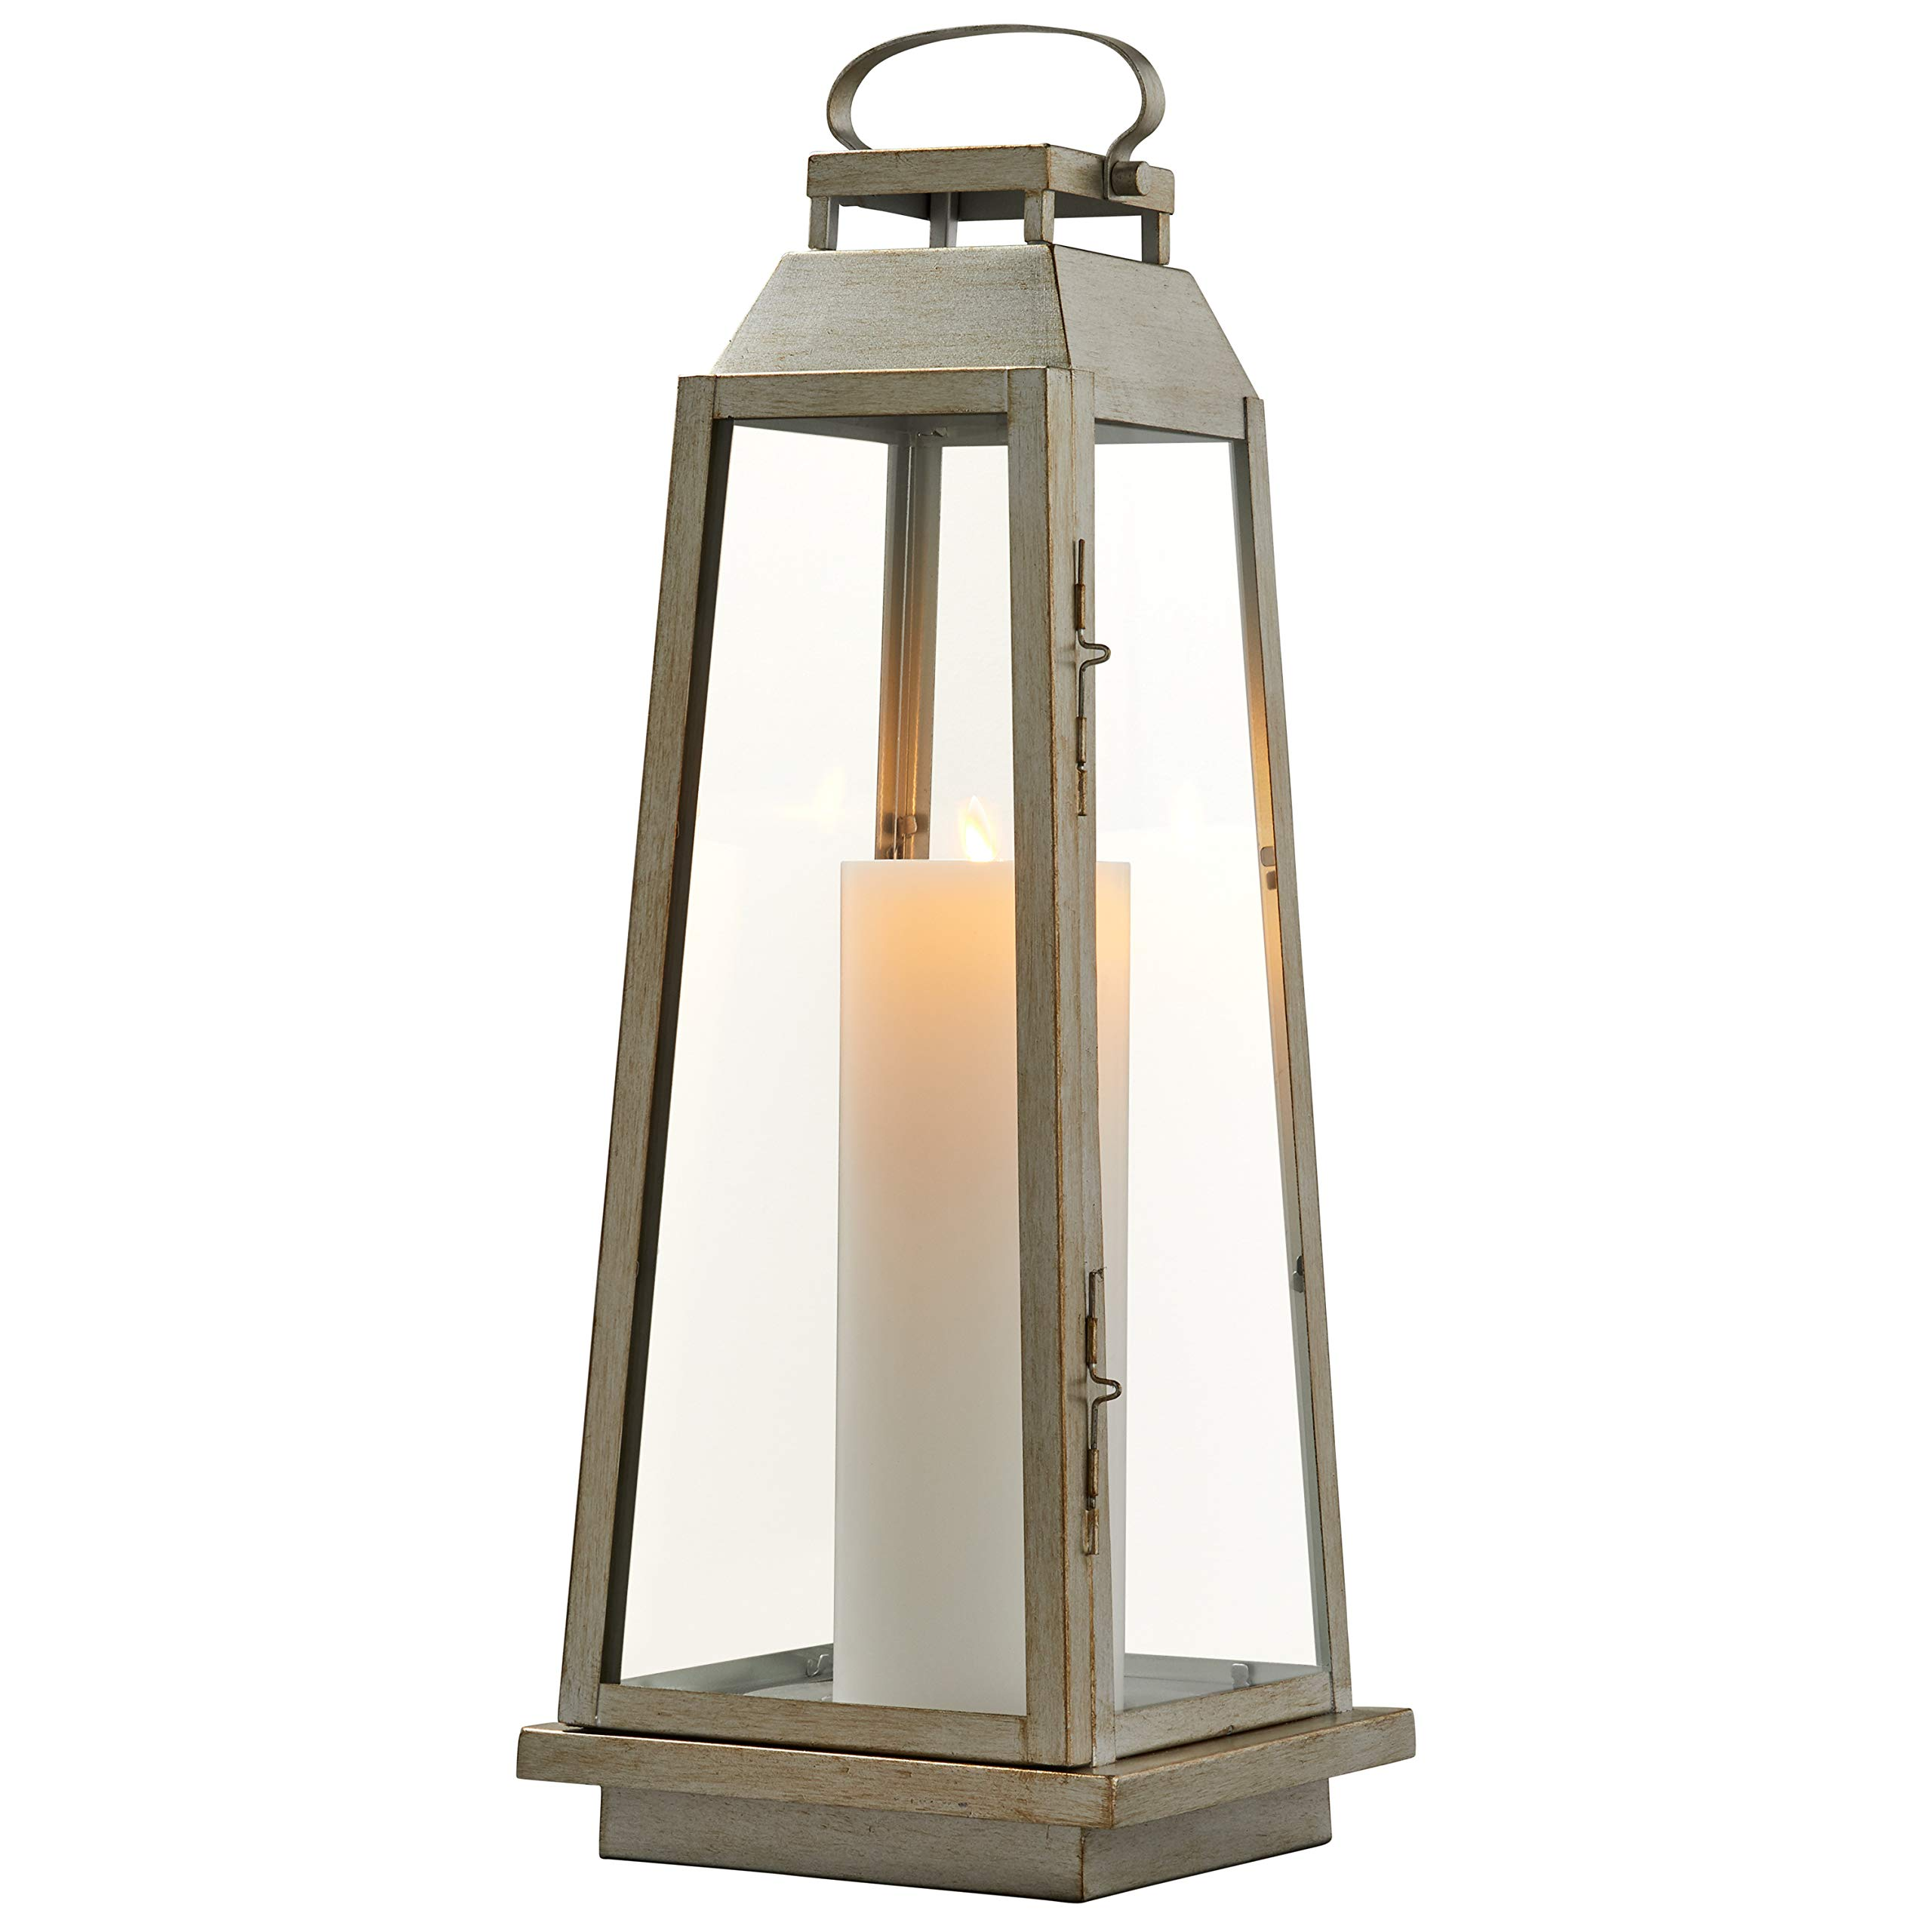 Stone & Beam Modern Traditional Decorative Metal and Glass Lantern with Candle, 25''H, Champagne Silver, For Indoor Outdoor Use by Stone & Beam (Image #4)